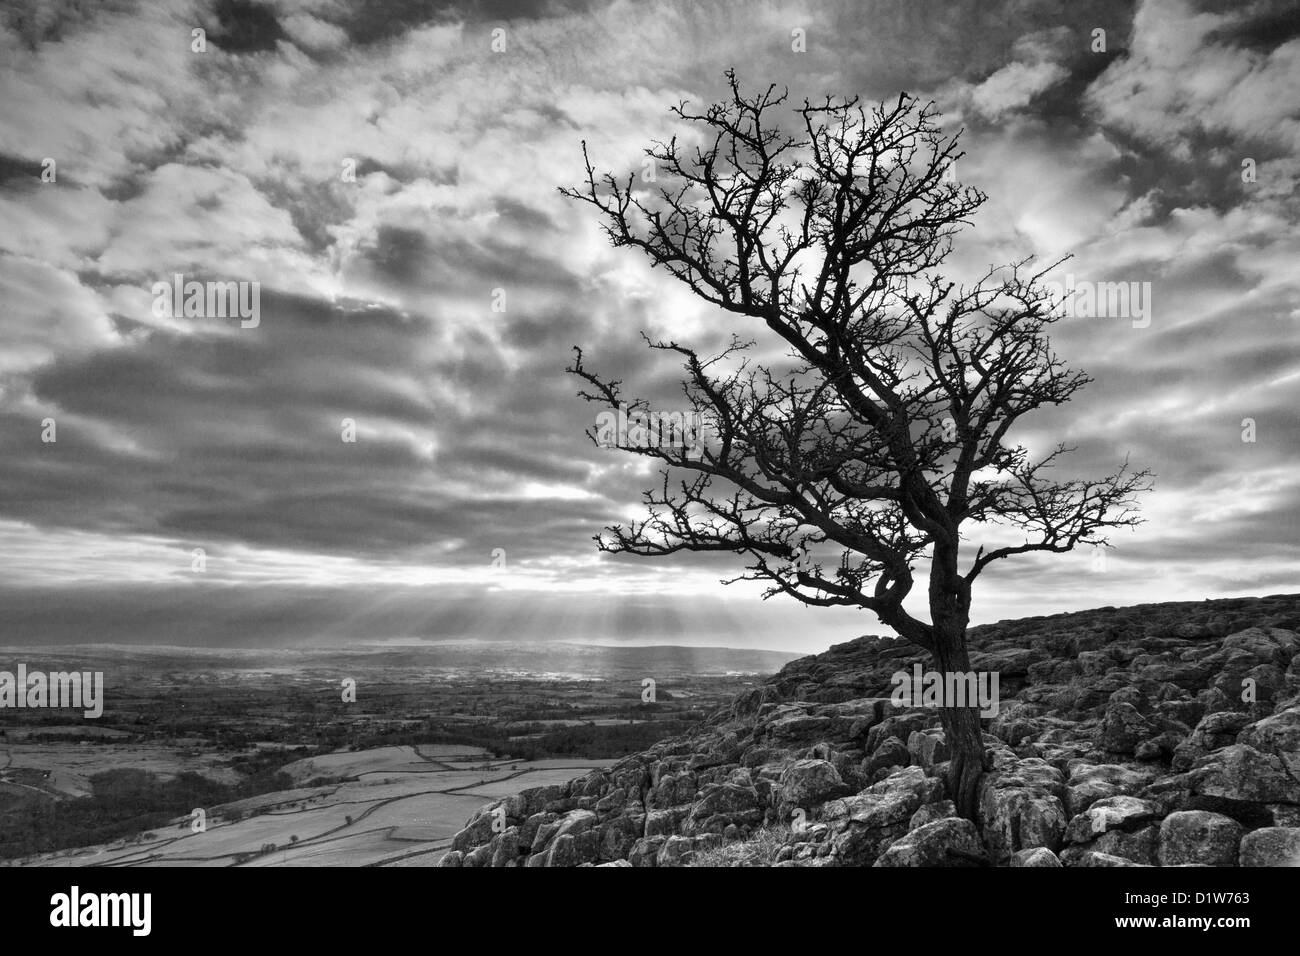 Black and white landscape image of a lone hawthorn tree on Twistleton Scars near Ingleborough in the Yorkshire Dales. - Stock Image